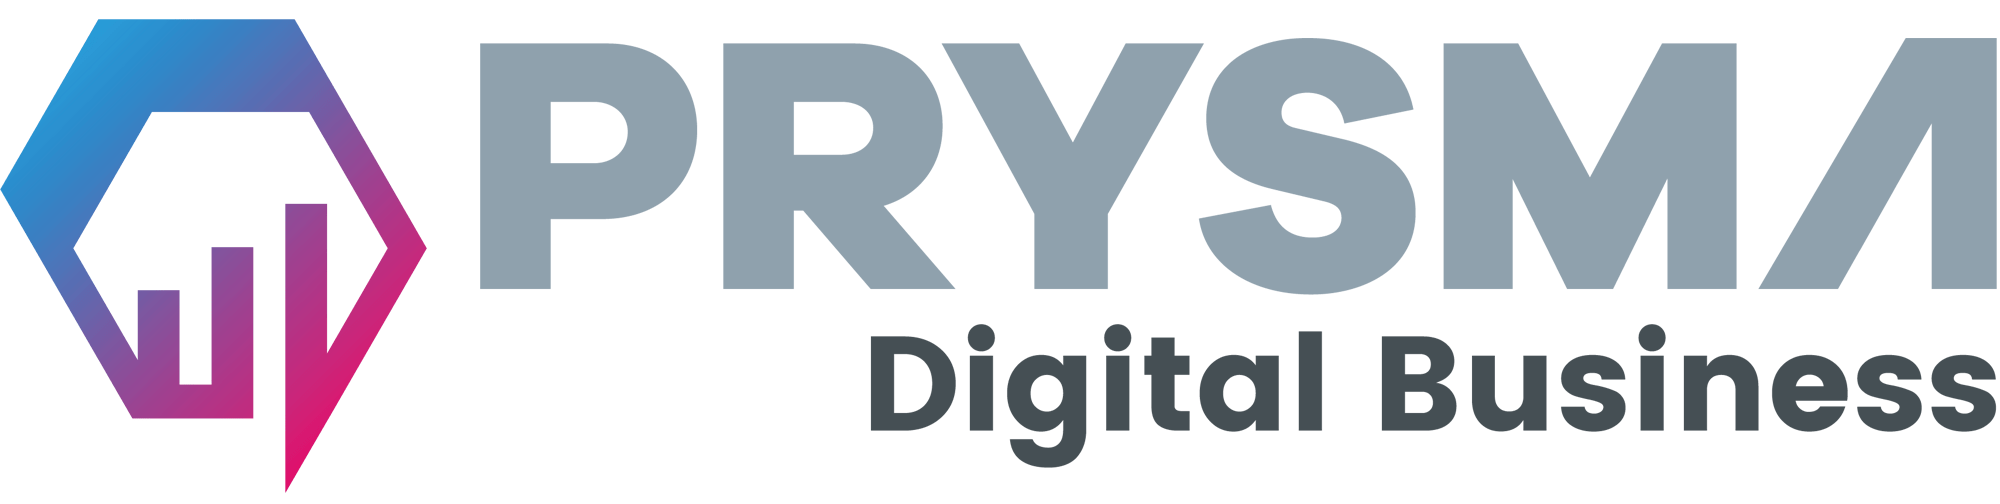 Prysma - Digital Business